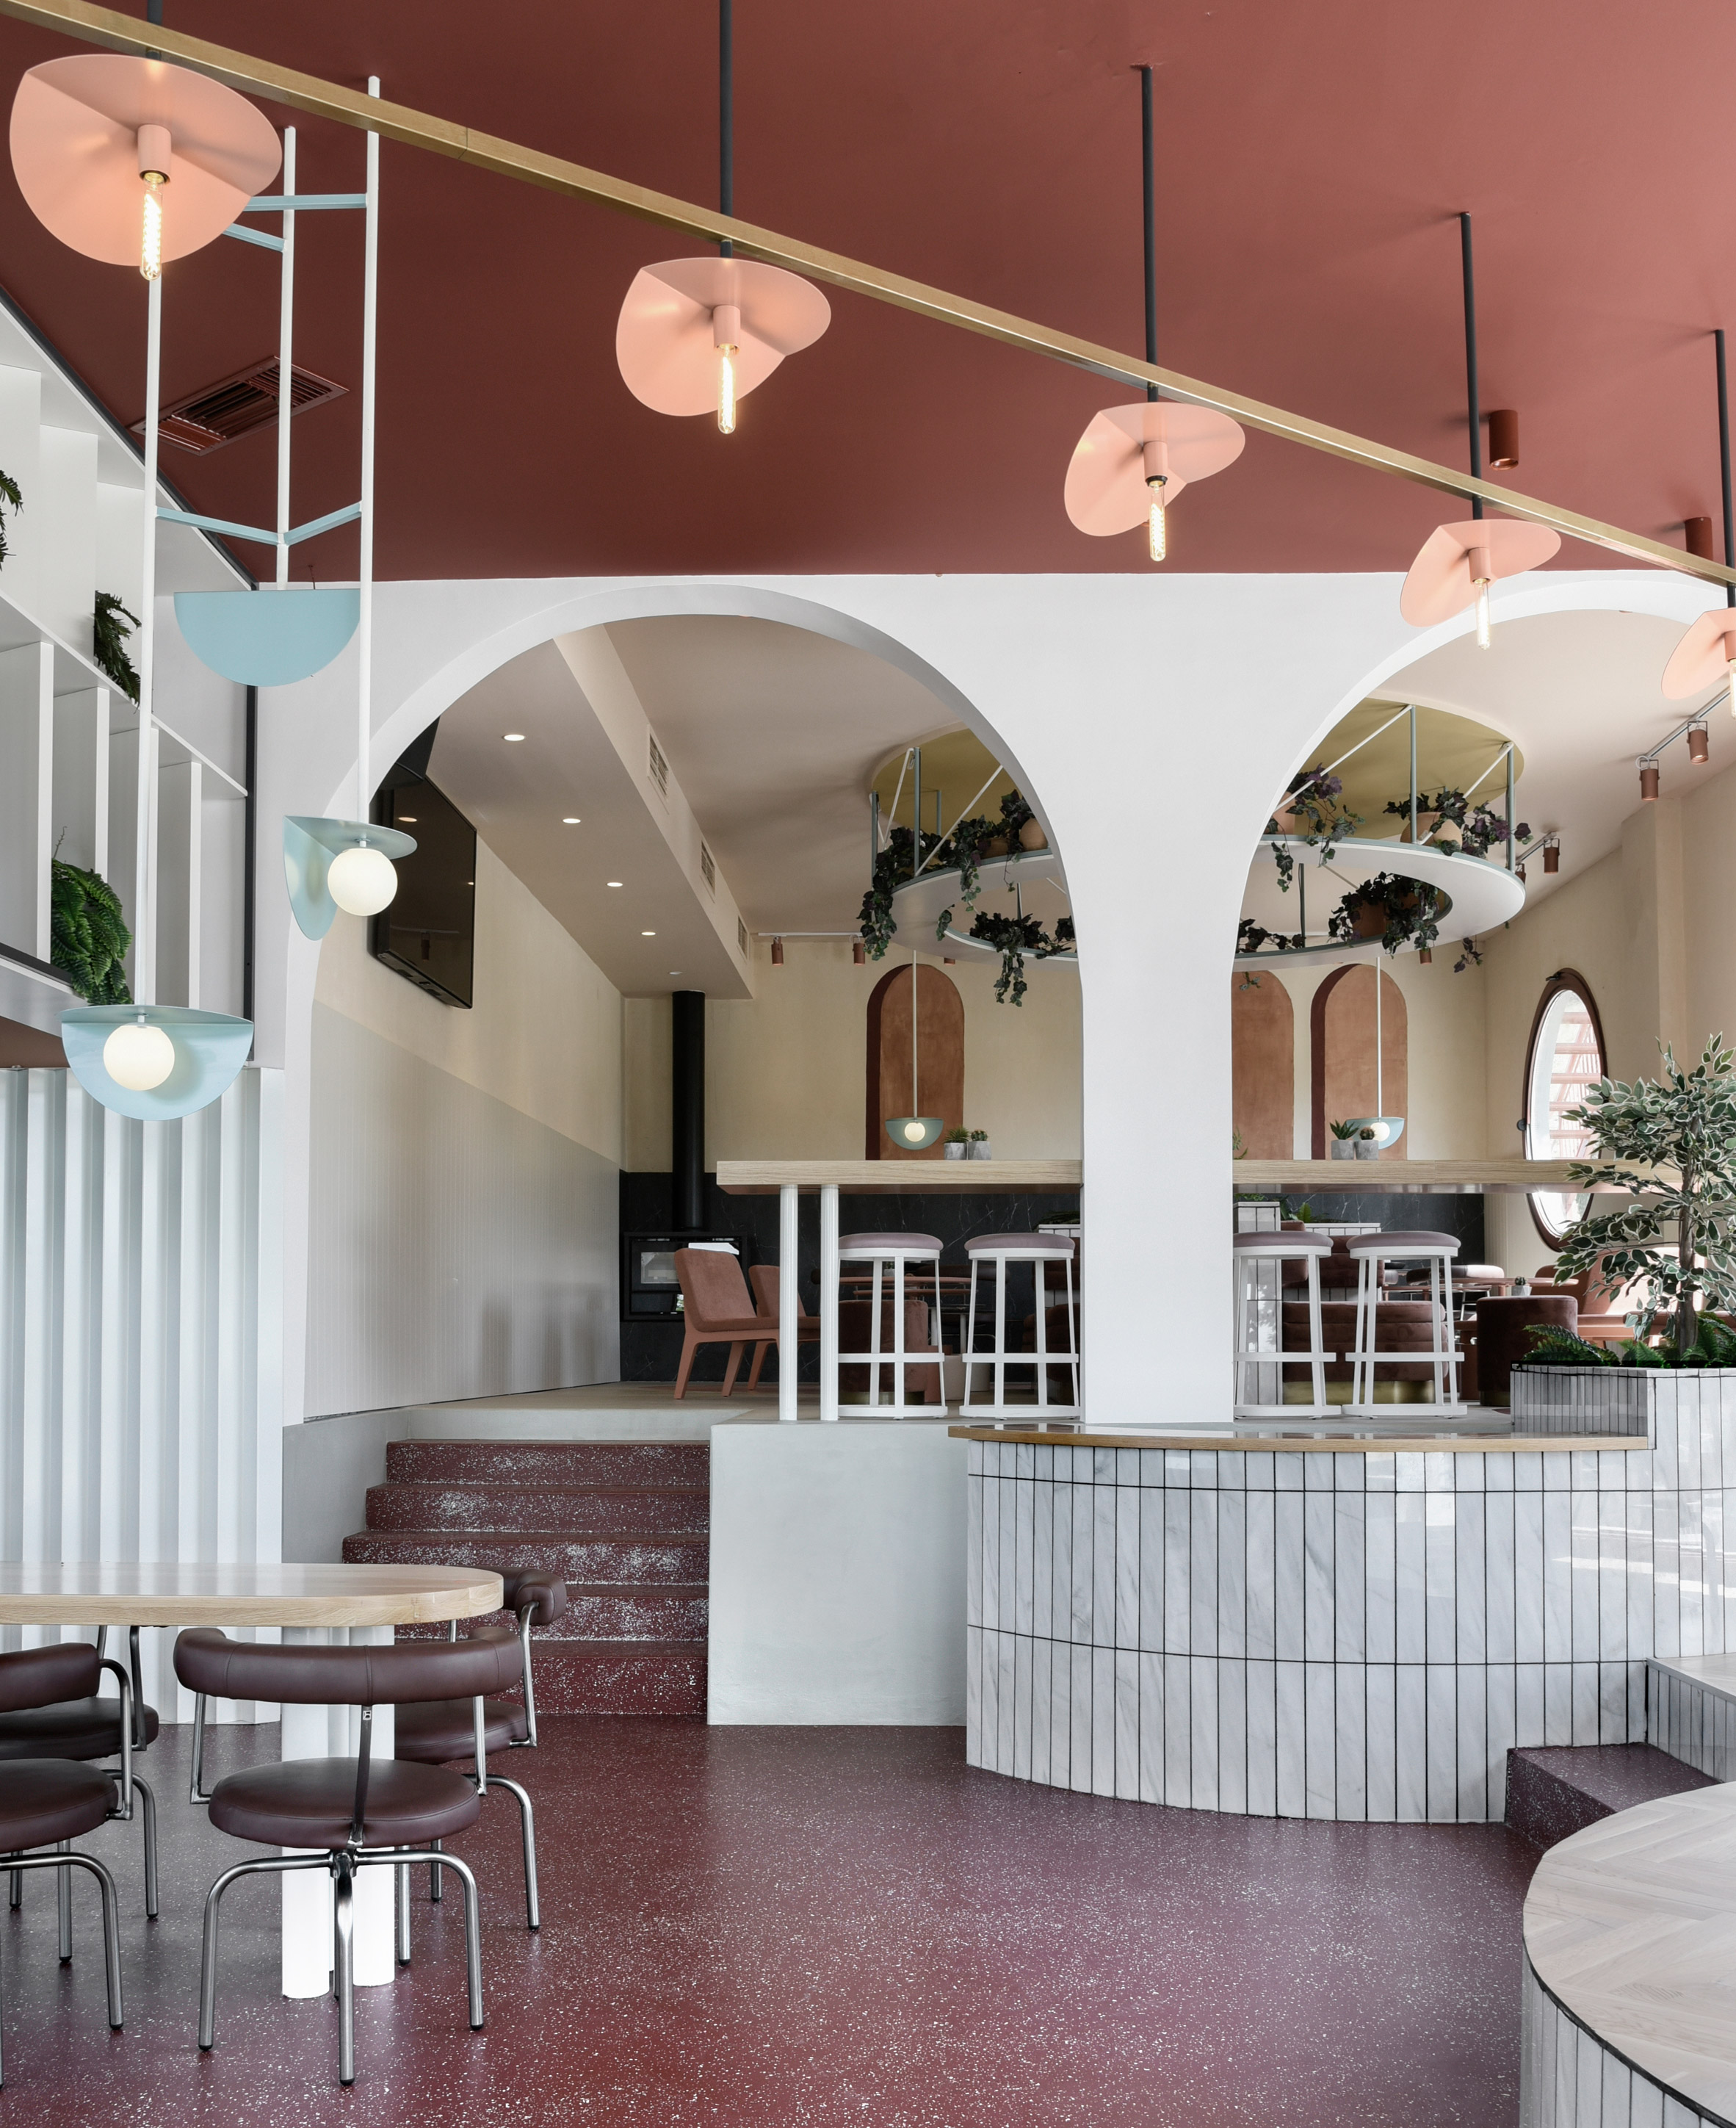 Interiors of Lofos cocktail bar designed by Ark4Lab of Architecture